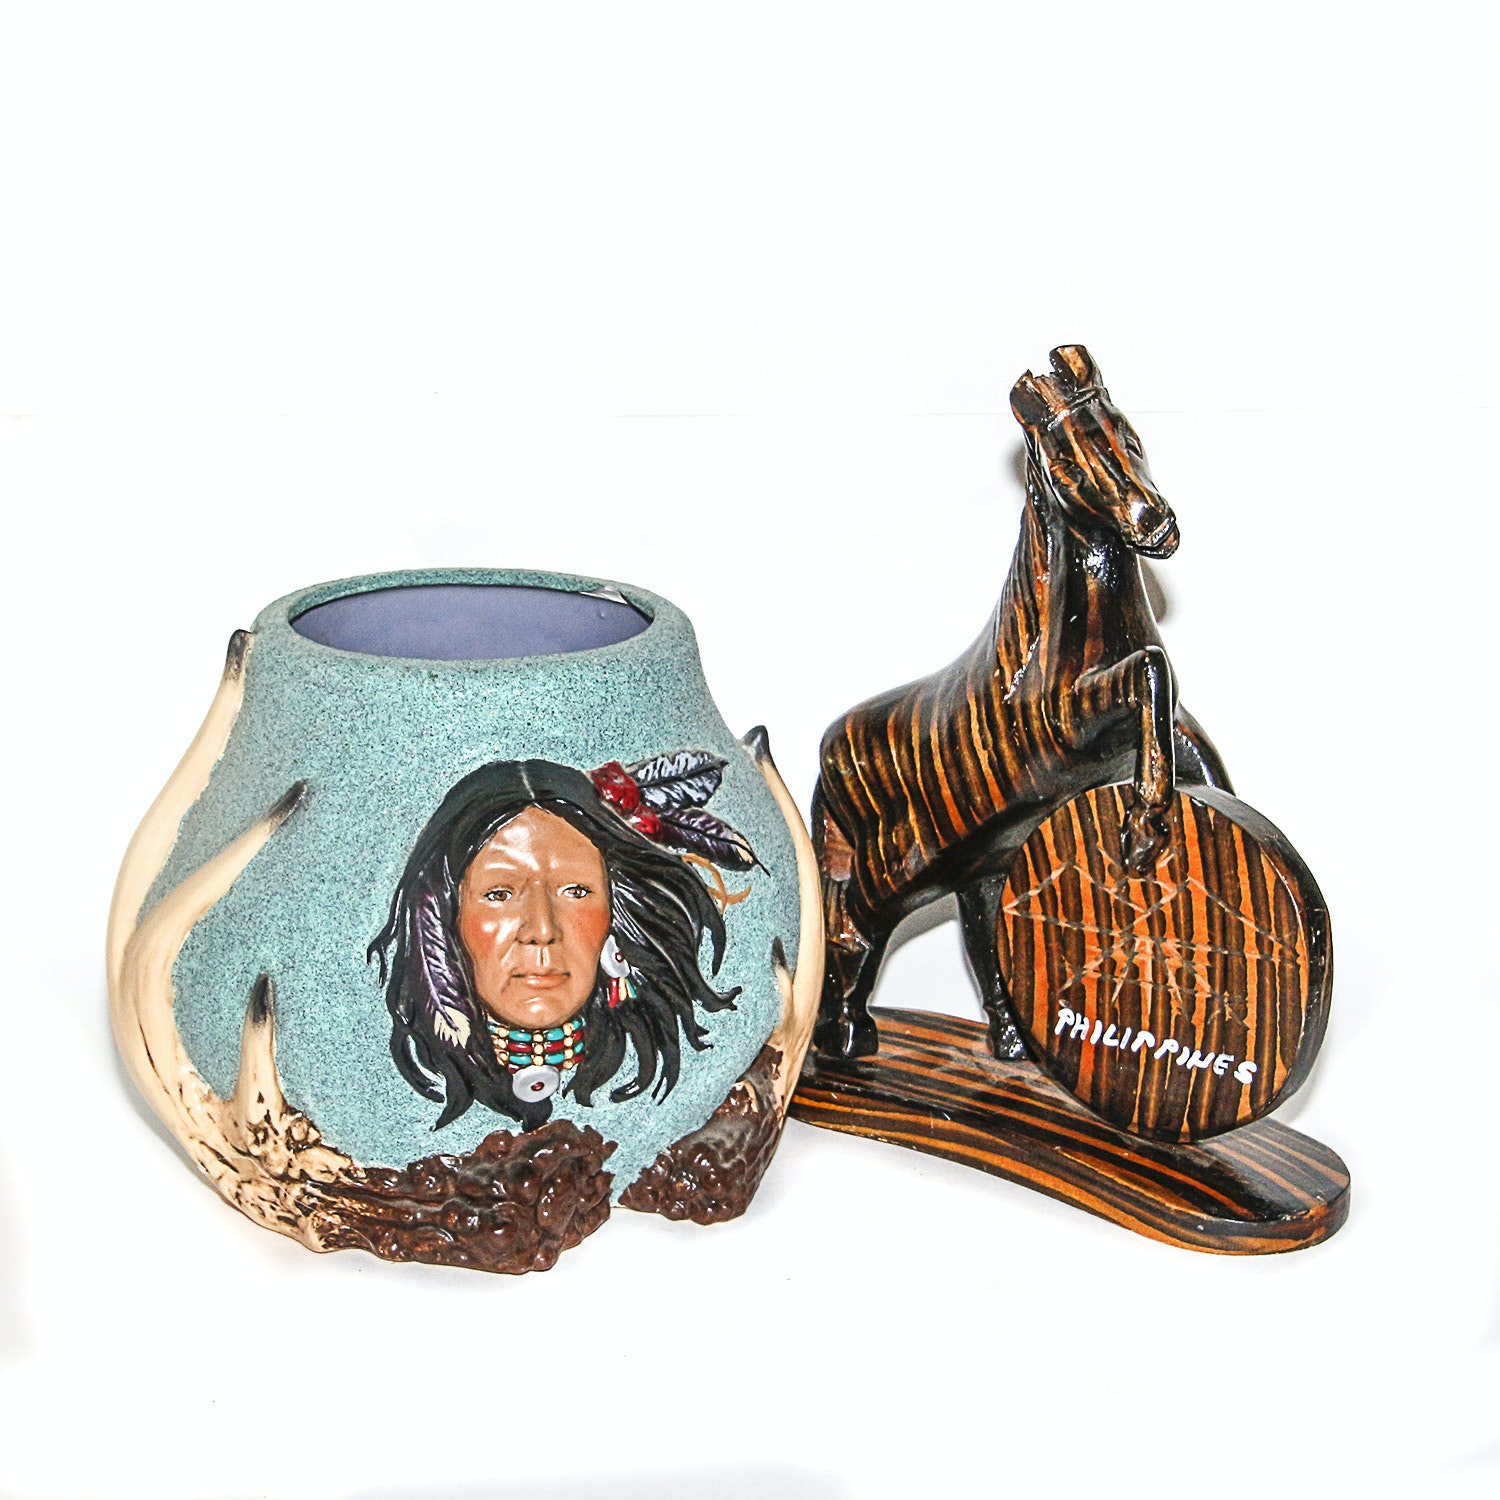 Ceramic Pot with Raised Relief of Native American and Carved Wooden Horse